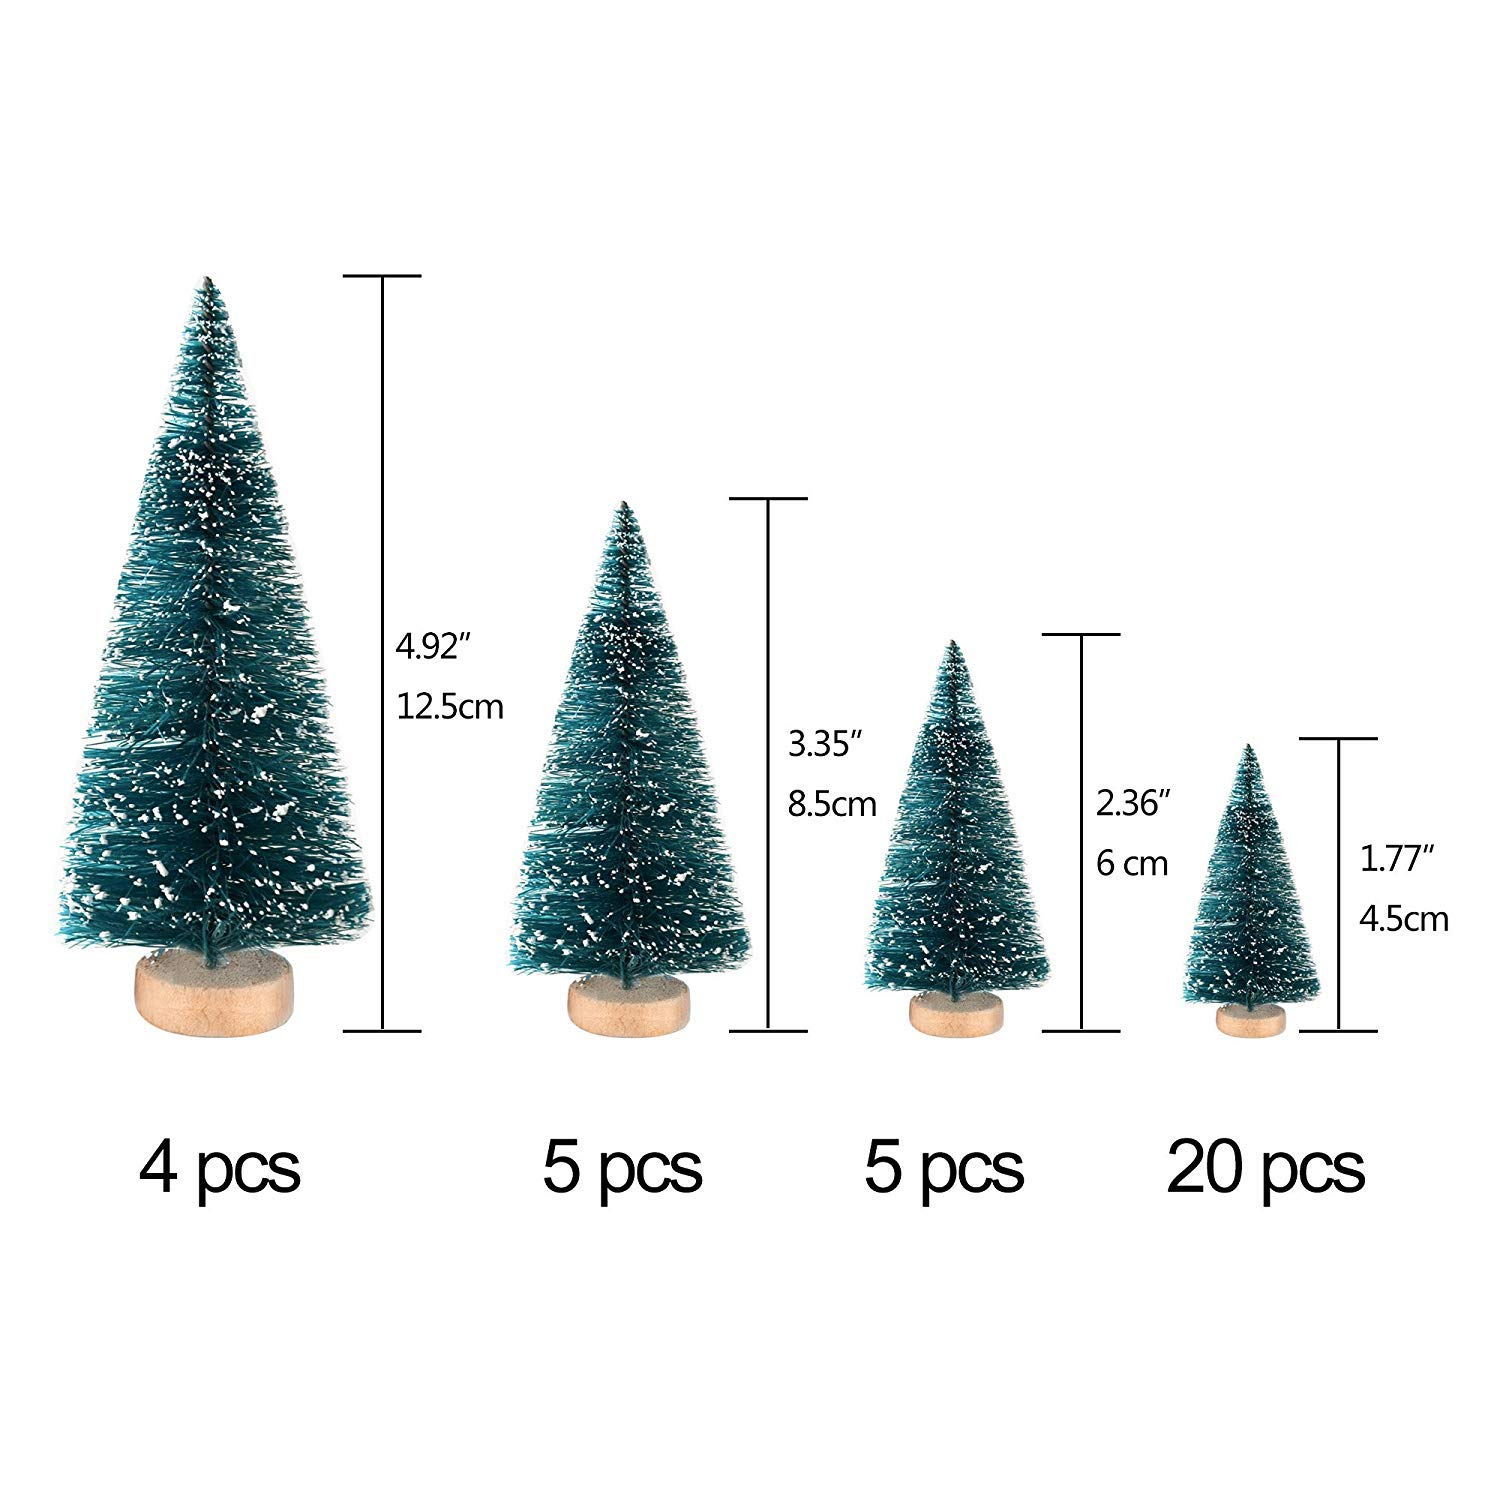 BELUPAID 34Pcs Mini Sisal Snow Frost Christmas Trees with Wood Base Bottle Brush Trees,Plastic Ornaments Tabletop Pine Tree for DIY Room Decor Crafting and Displaying Decoration